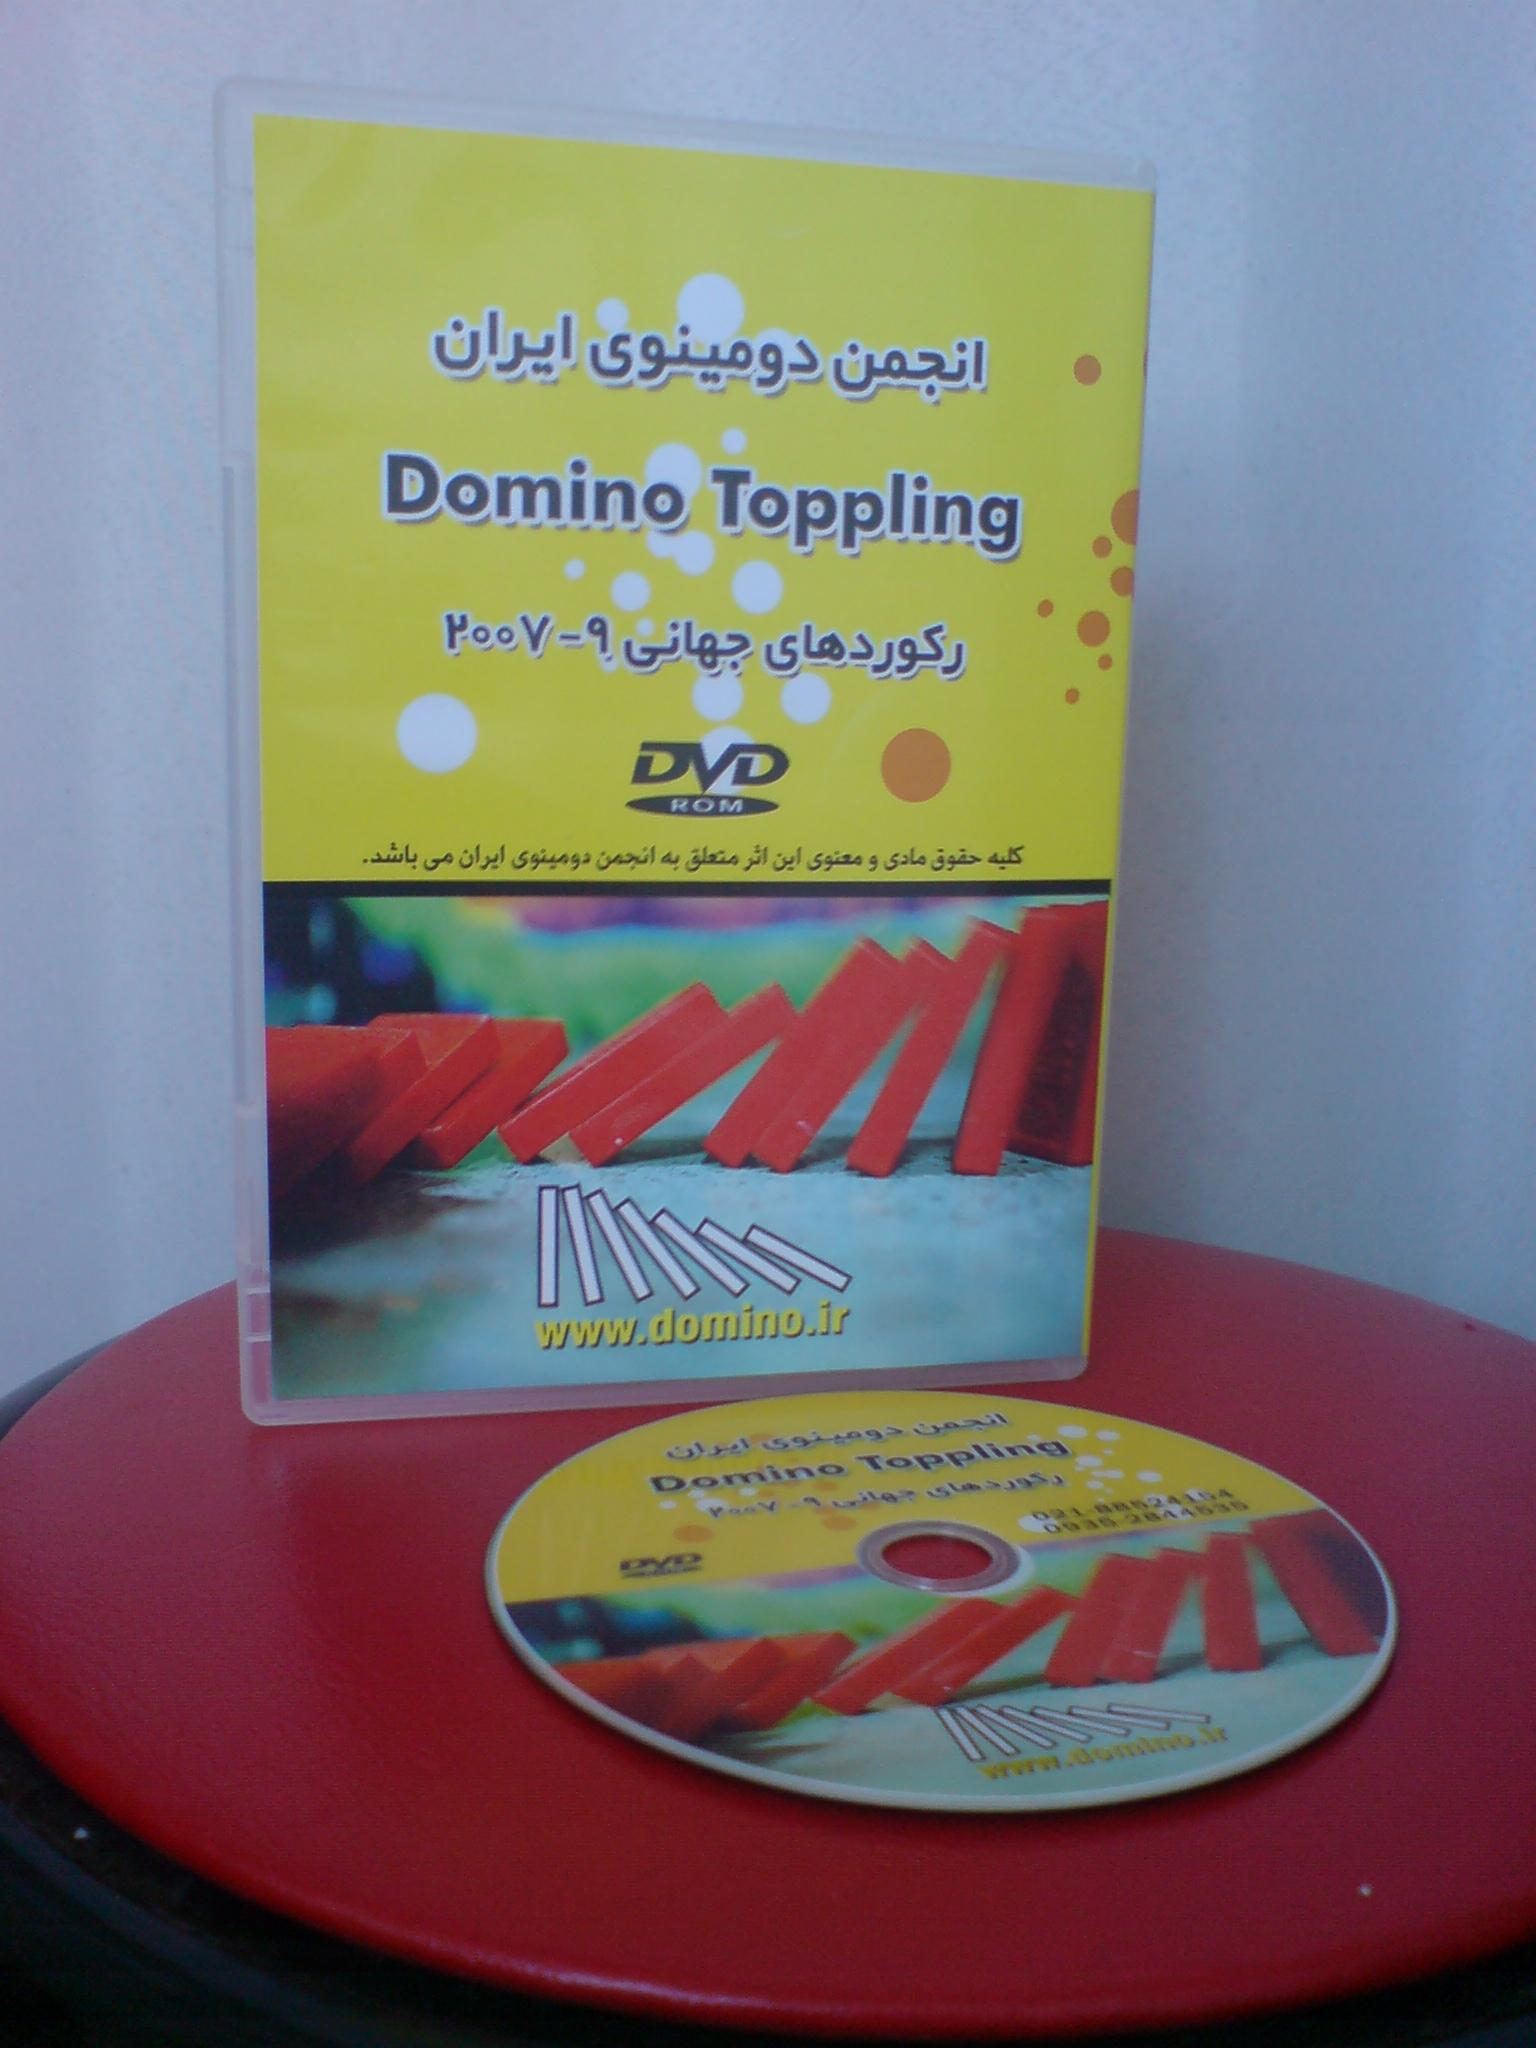 http://www.domino.ir/images/dvd%20domino.jpg